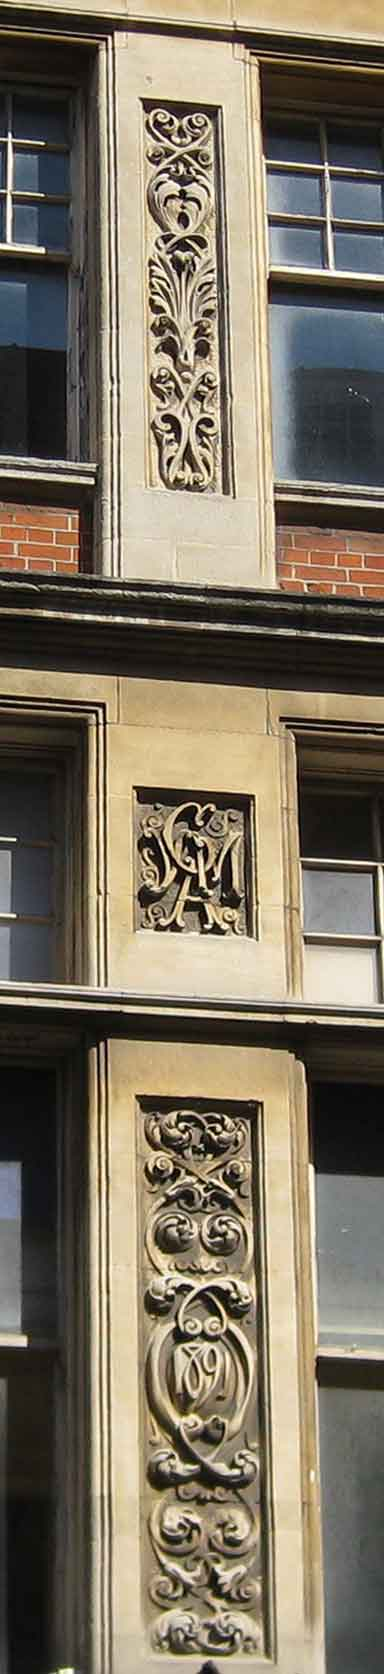 Detail of YMCA building